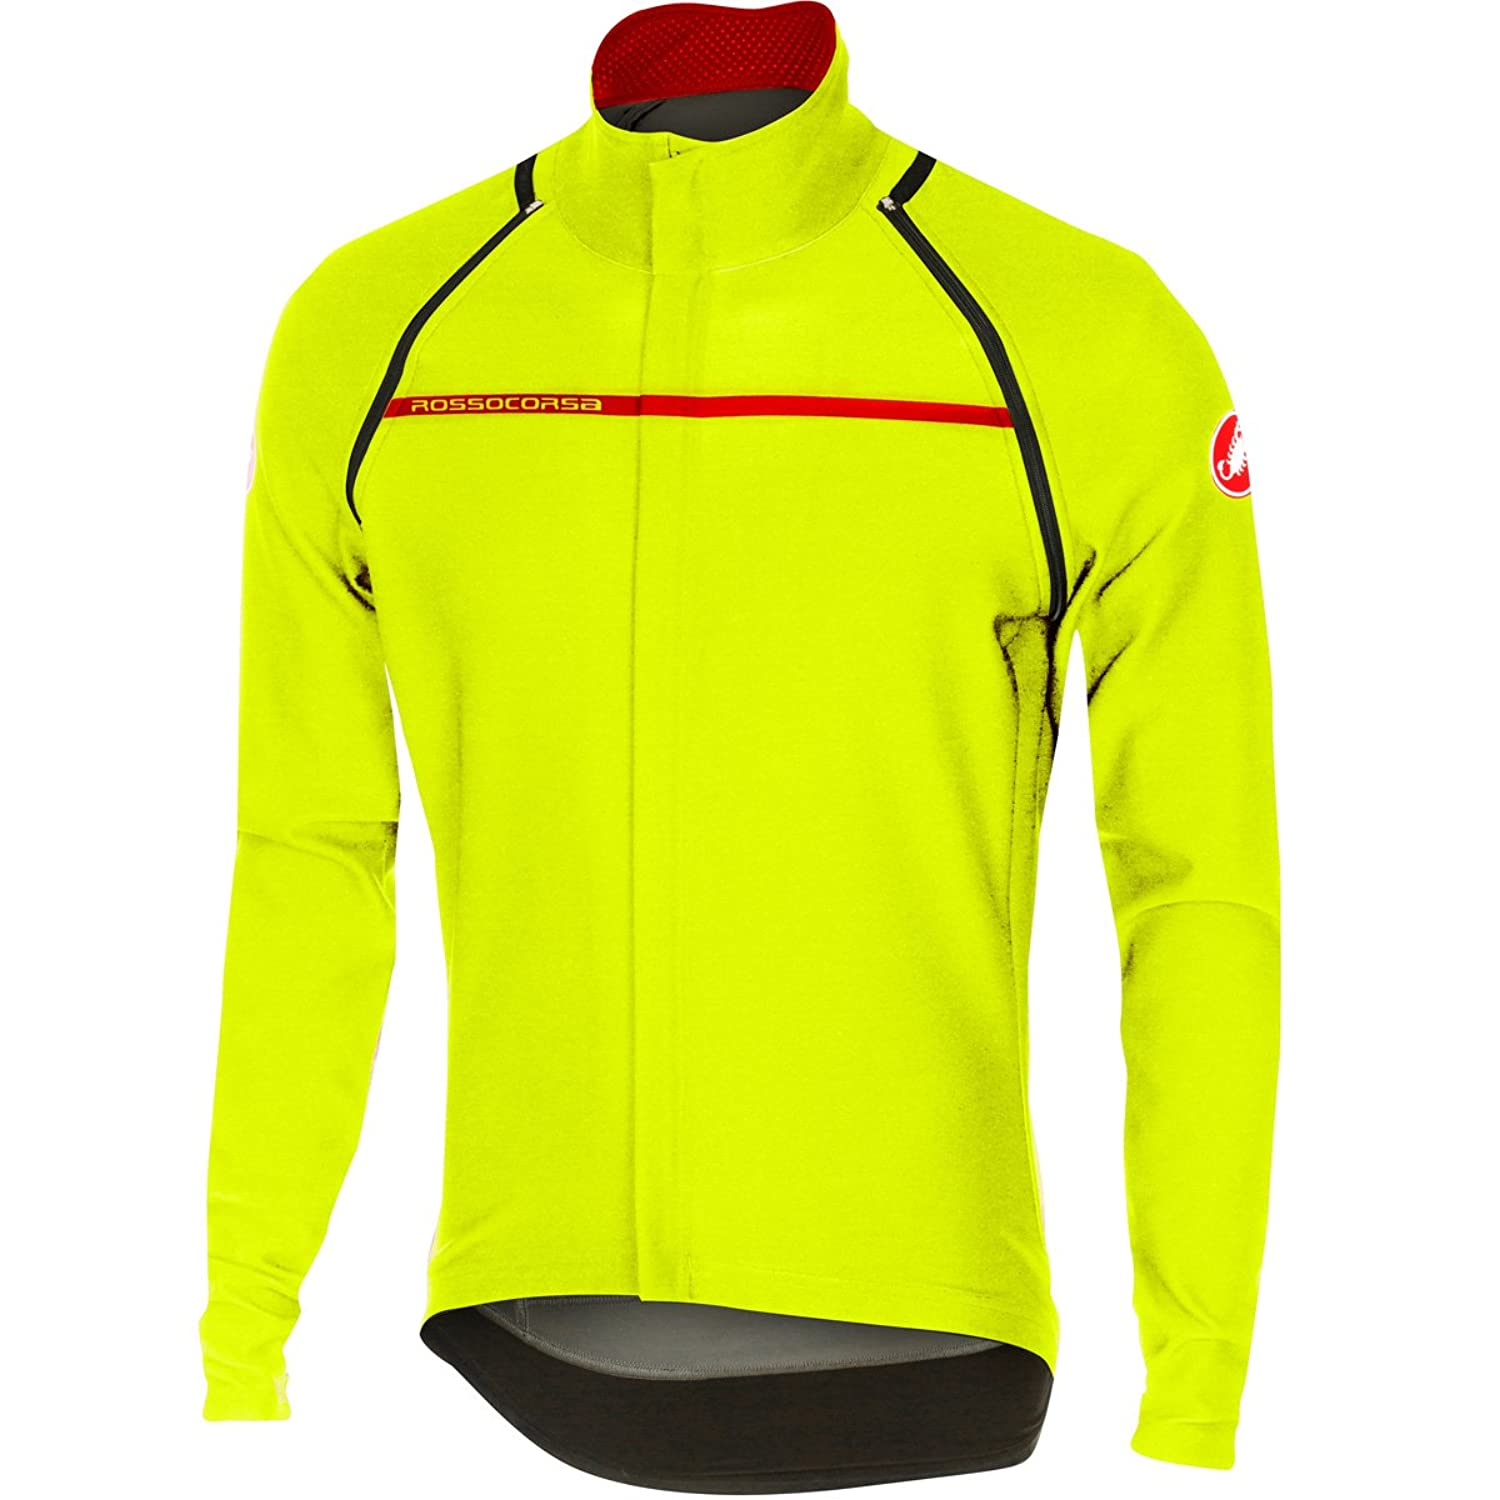 Castelli OUTERWEAR メンズ B075FX1ZB2  イエロー(Yellow Fluo) X-Large